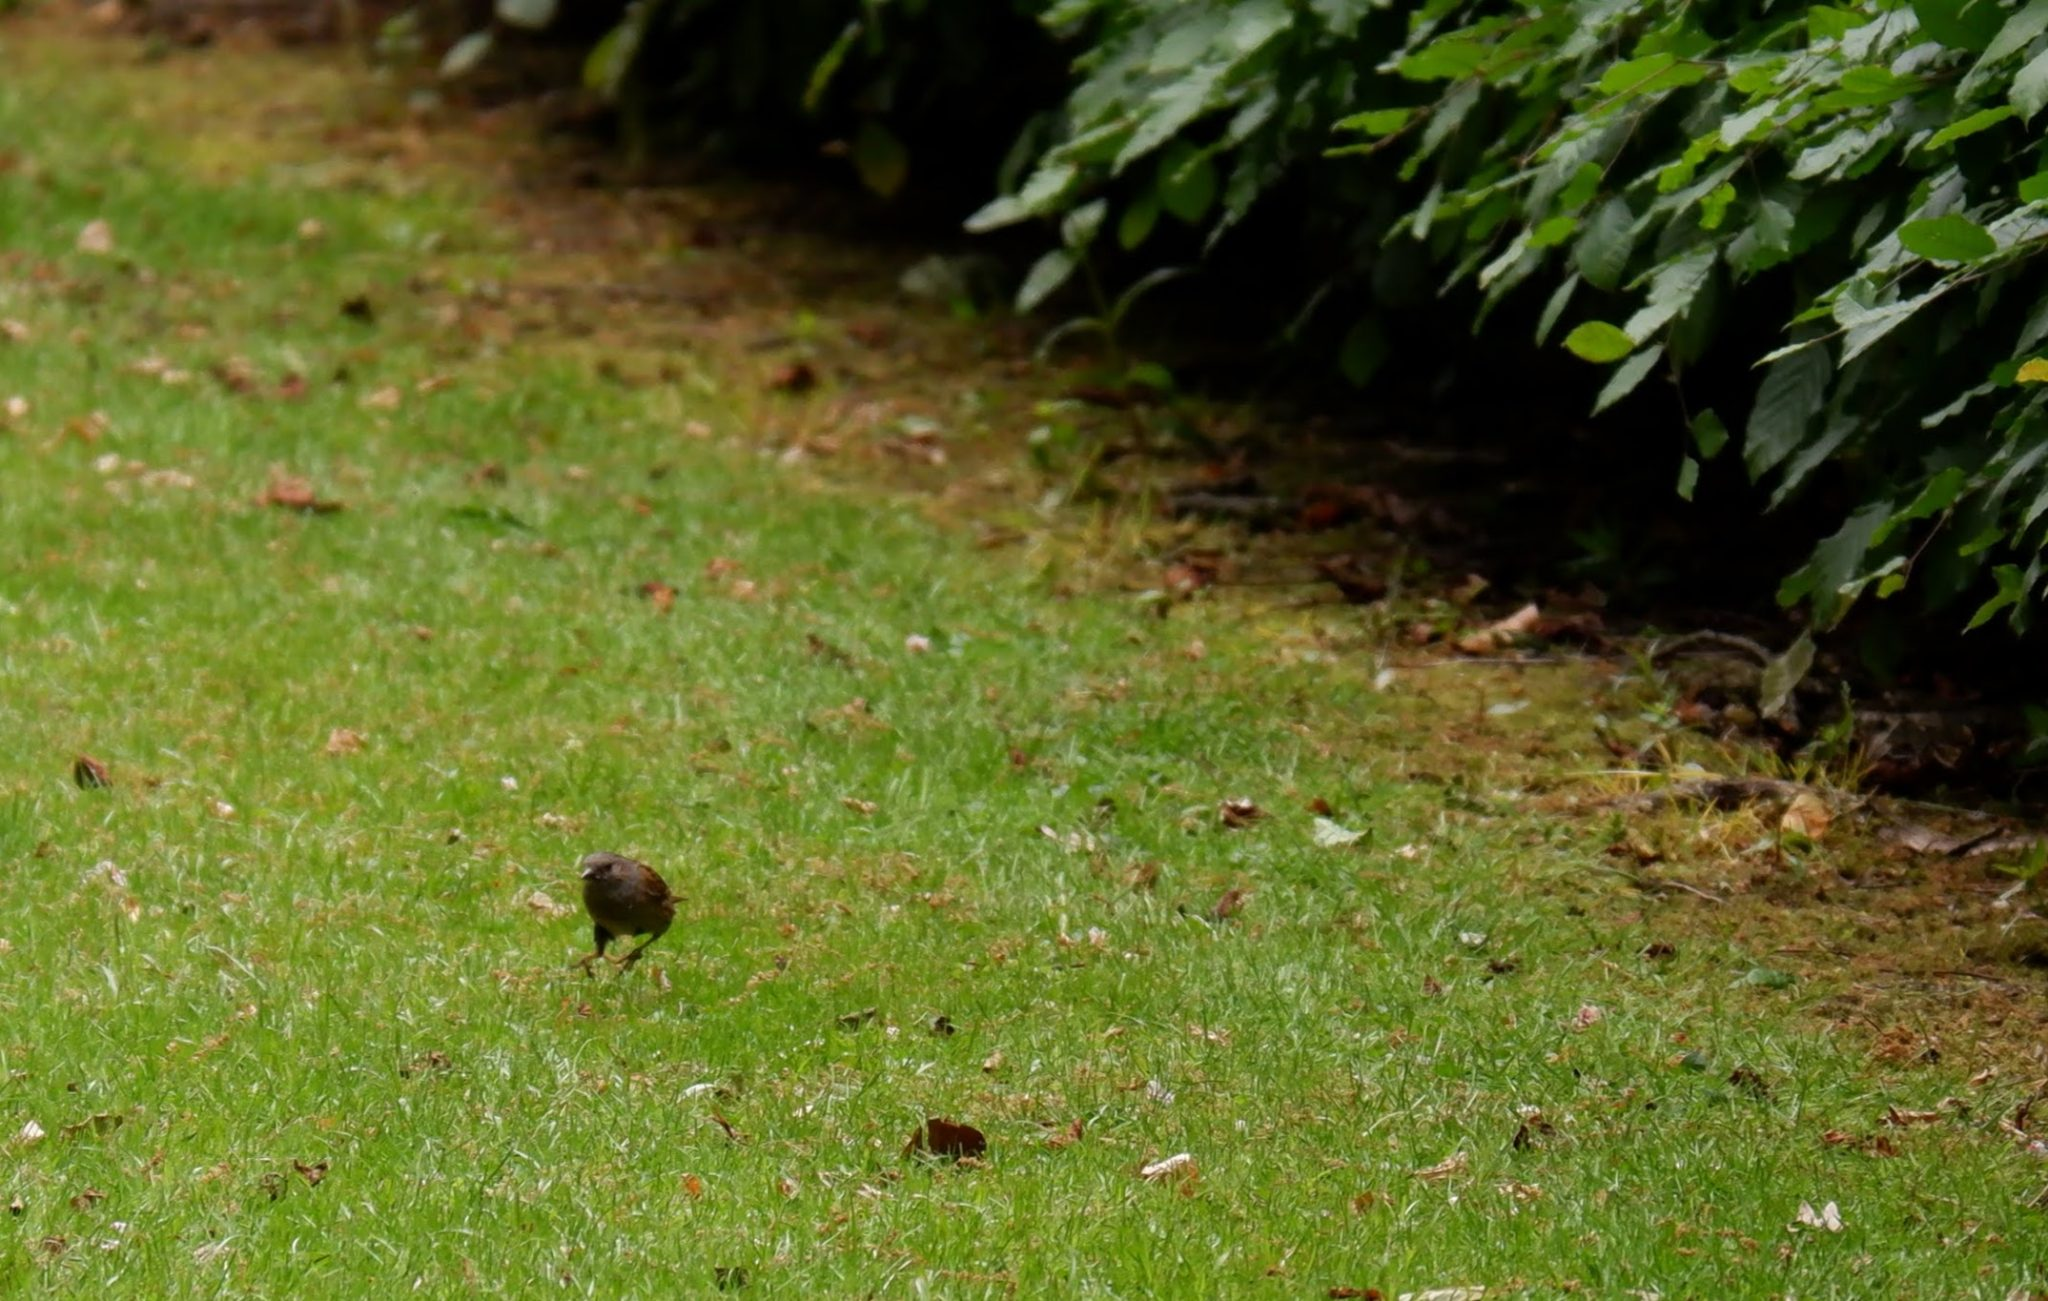 Dunnocks in Southern Cemetery in Manchester